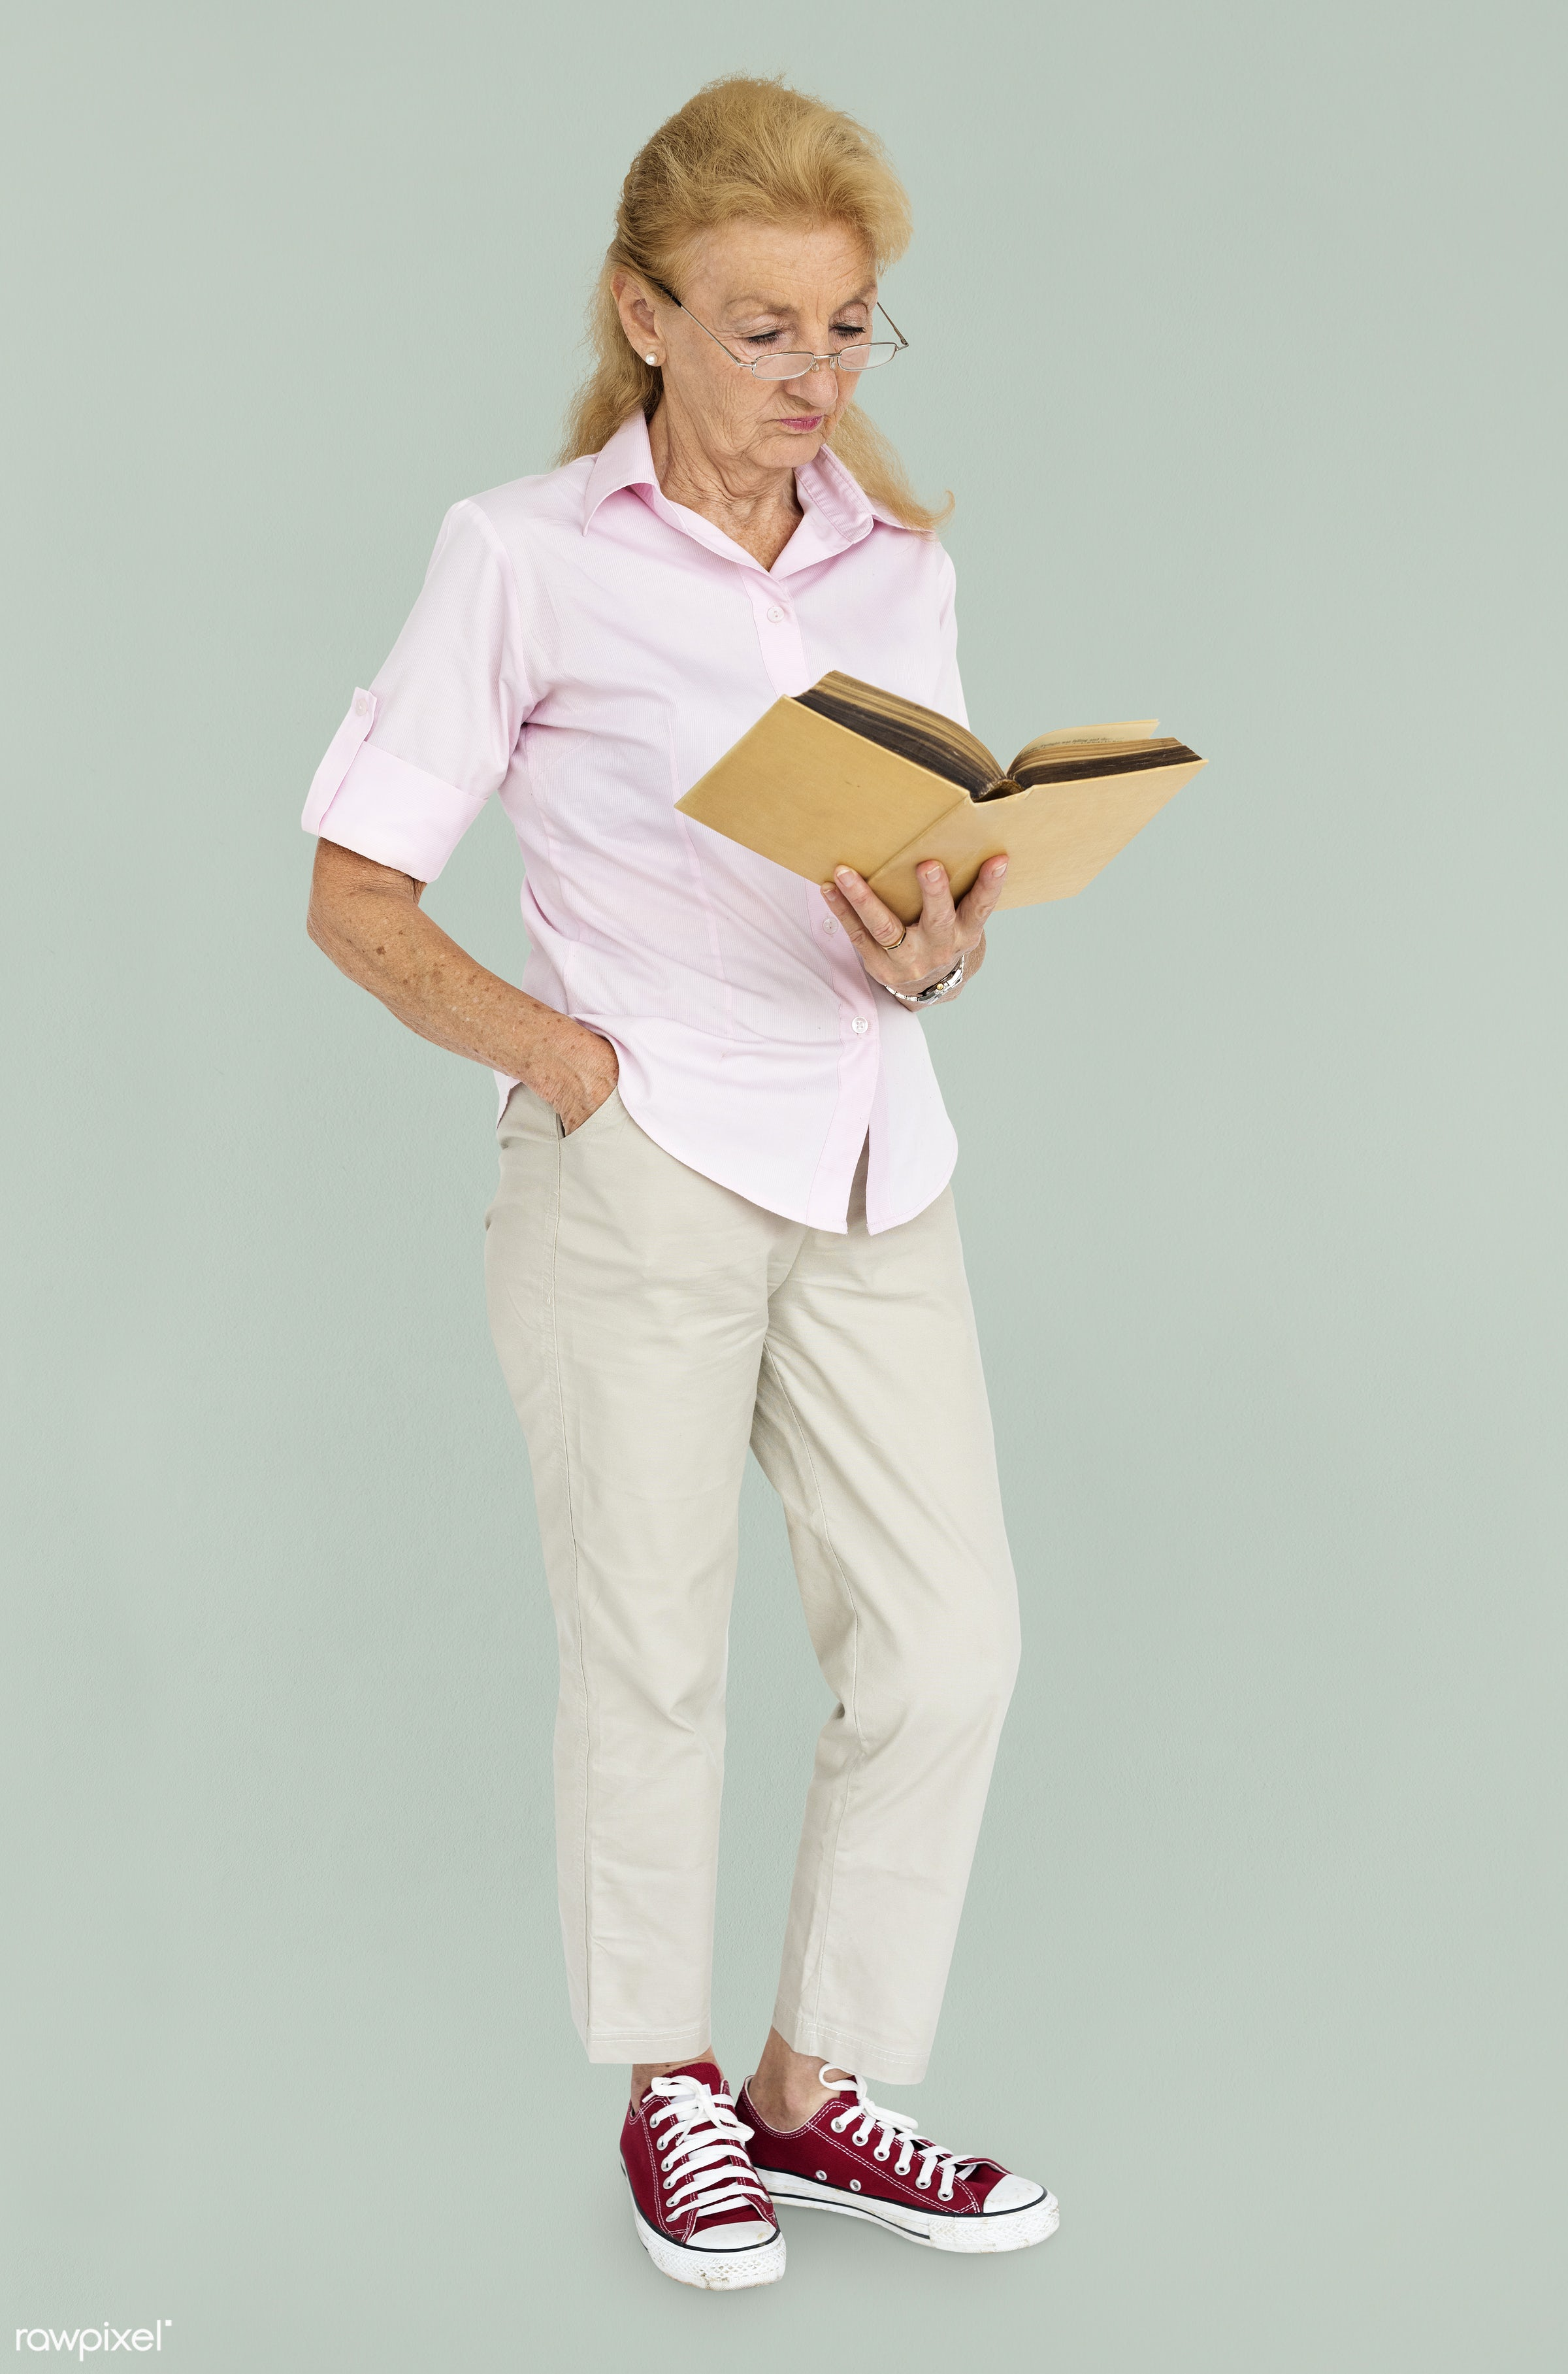 expression, studio, person, reading, people, caucasian, girl, woman, american, read, isolated, full body, white, adult,...